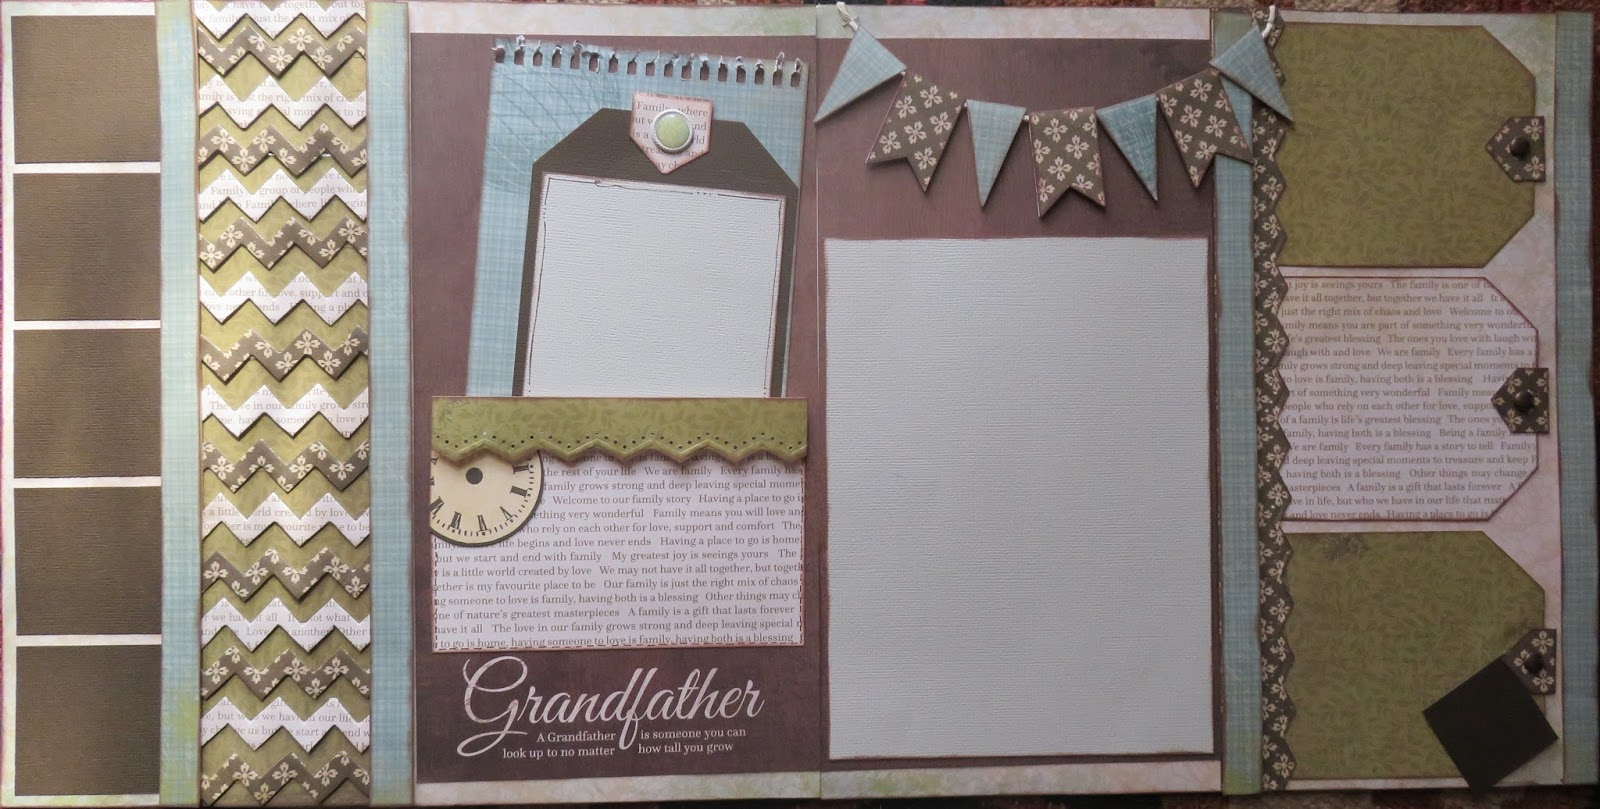 How to add scrapbook pages - Lynn And I Had A Gentle Scrapbooking Day On Saturday It Was Lovely These Are The Double Page Layouts That I Started At The Scissor Sisters Event Last